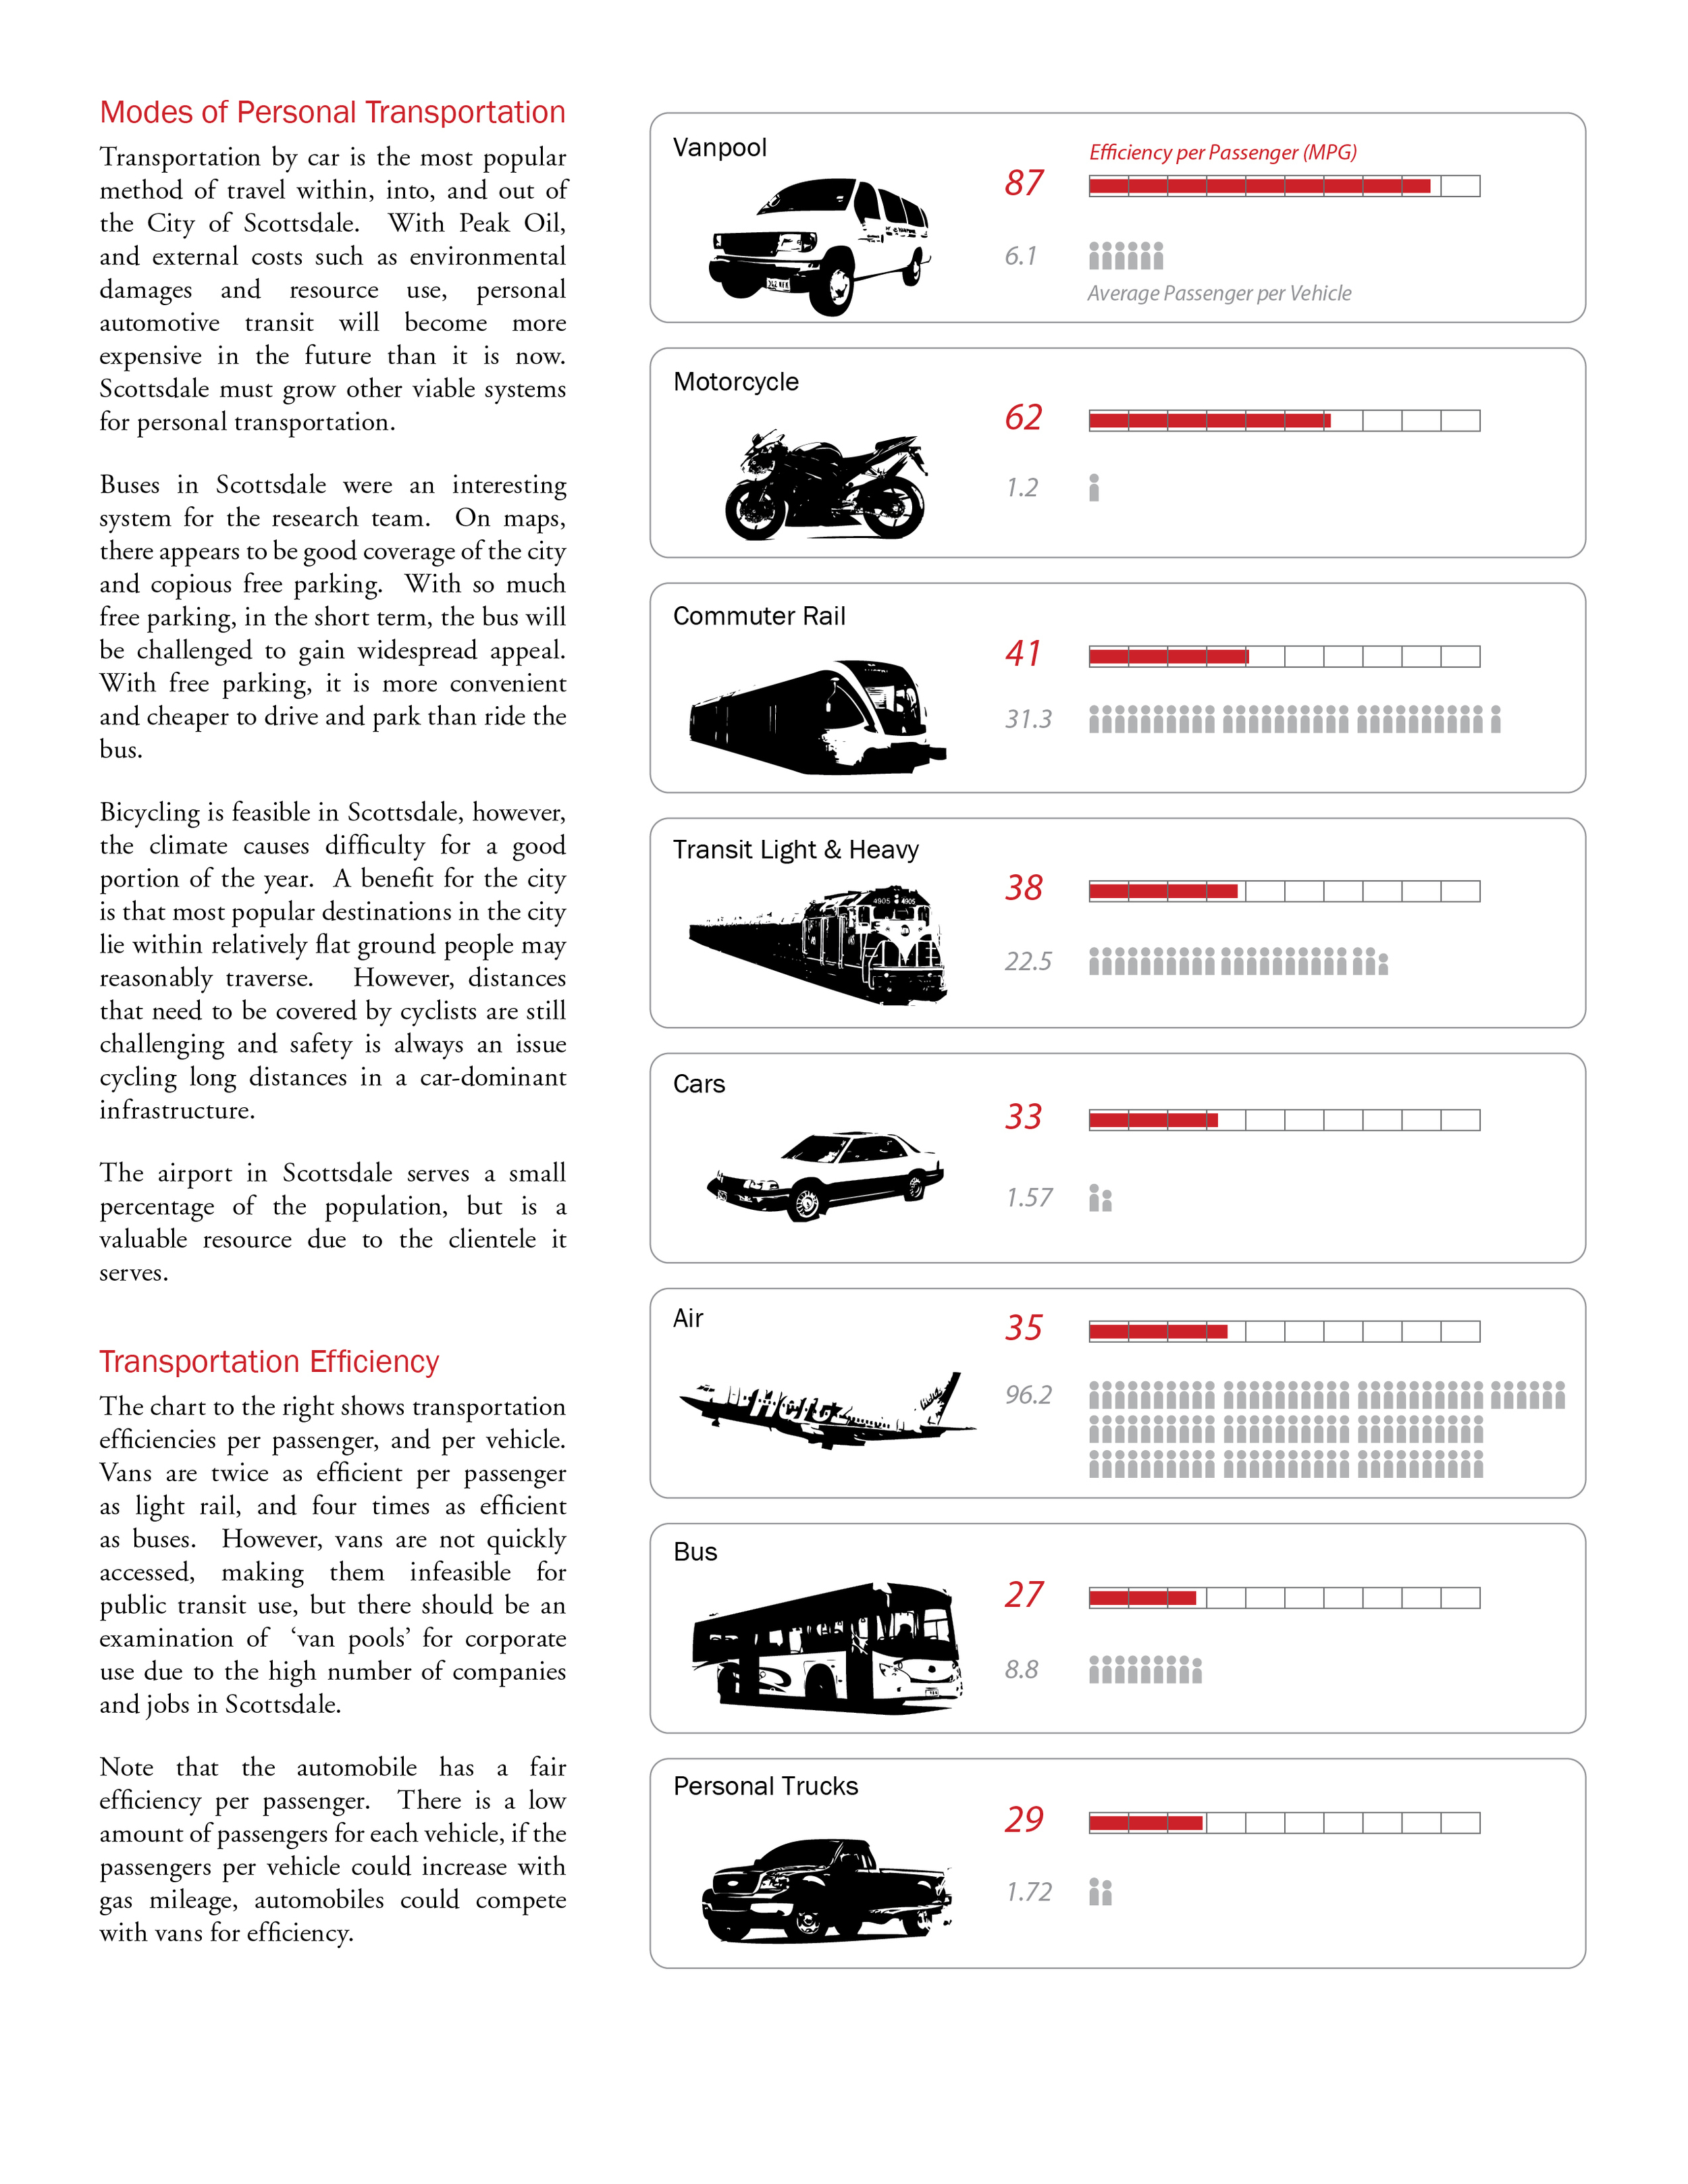 Scottsdale is a car dominant culture for passenger travel. This page shows a list of the efficiency of transportation modes for energy use per passenger.  Note that vanpooling might be a viable means of transport.